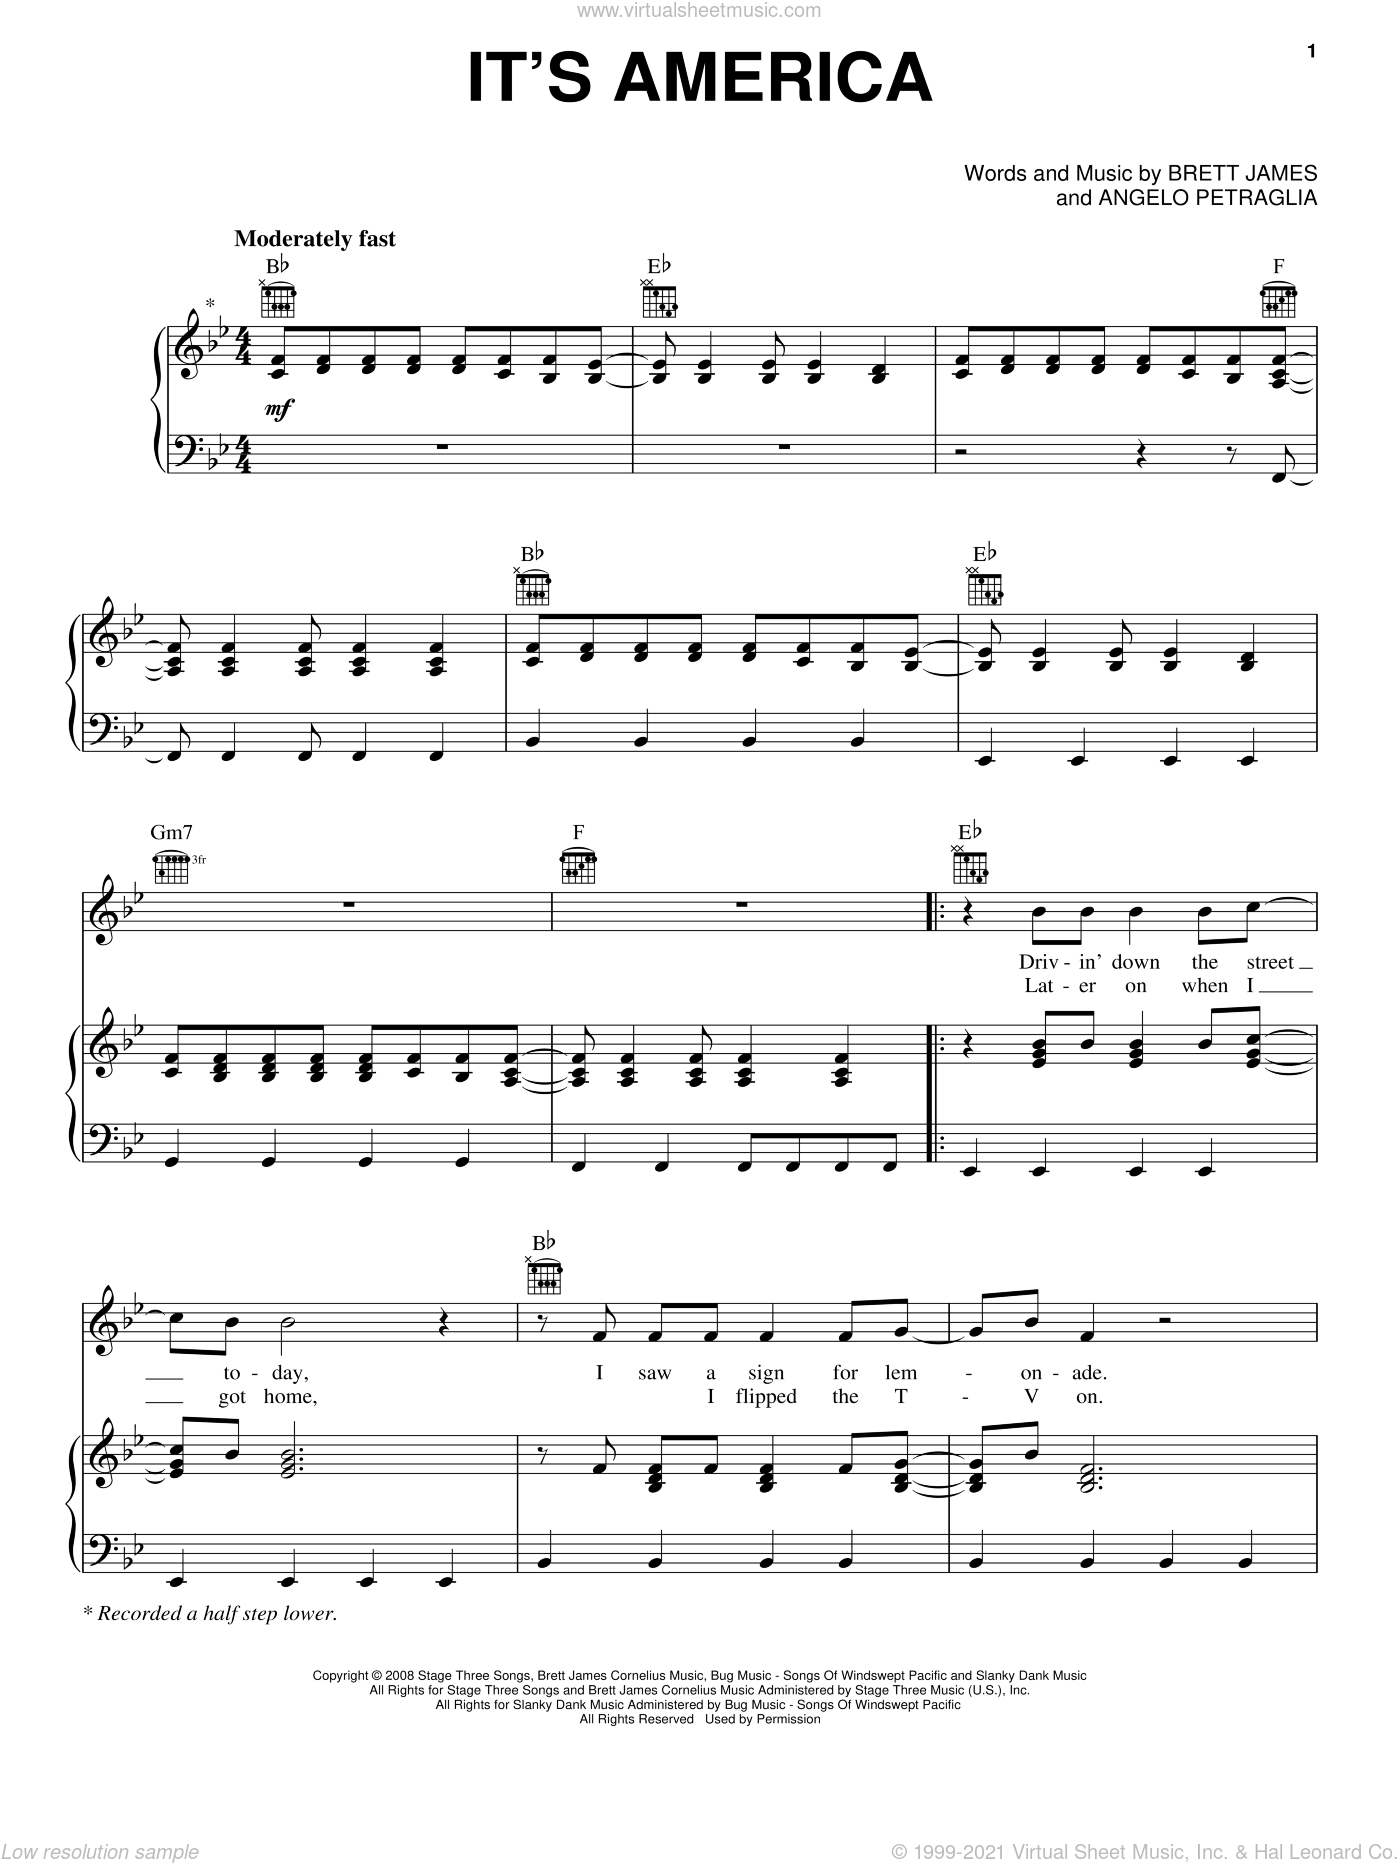 It's America sheet music for voice, piano or guitar by Rodney Atkins, Angelo Petraglia and Brett James, intermediate skill level